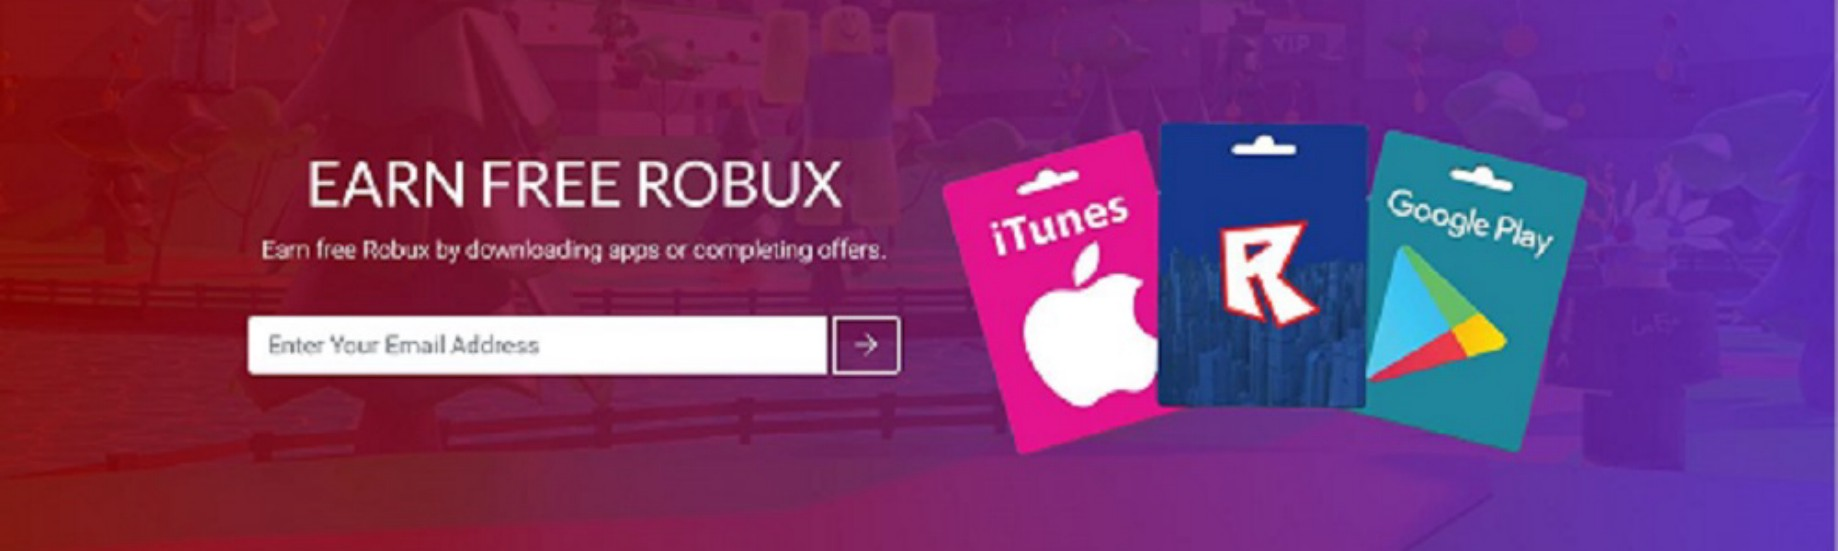 earn robux free 2020 How To Earn Free Robux Using Earnrobuxfree Fast 2020 By Oliver Medium